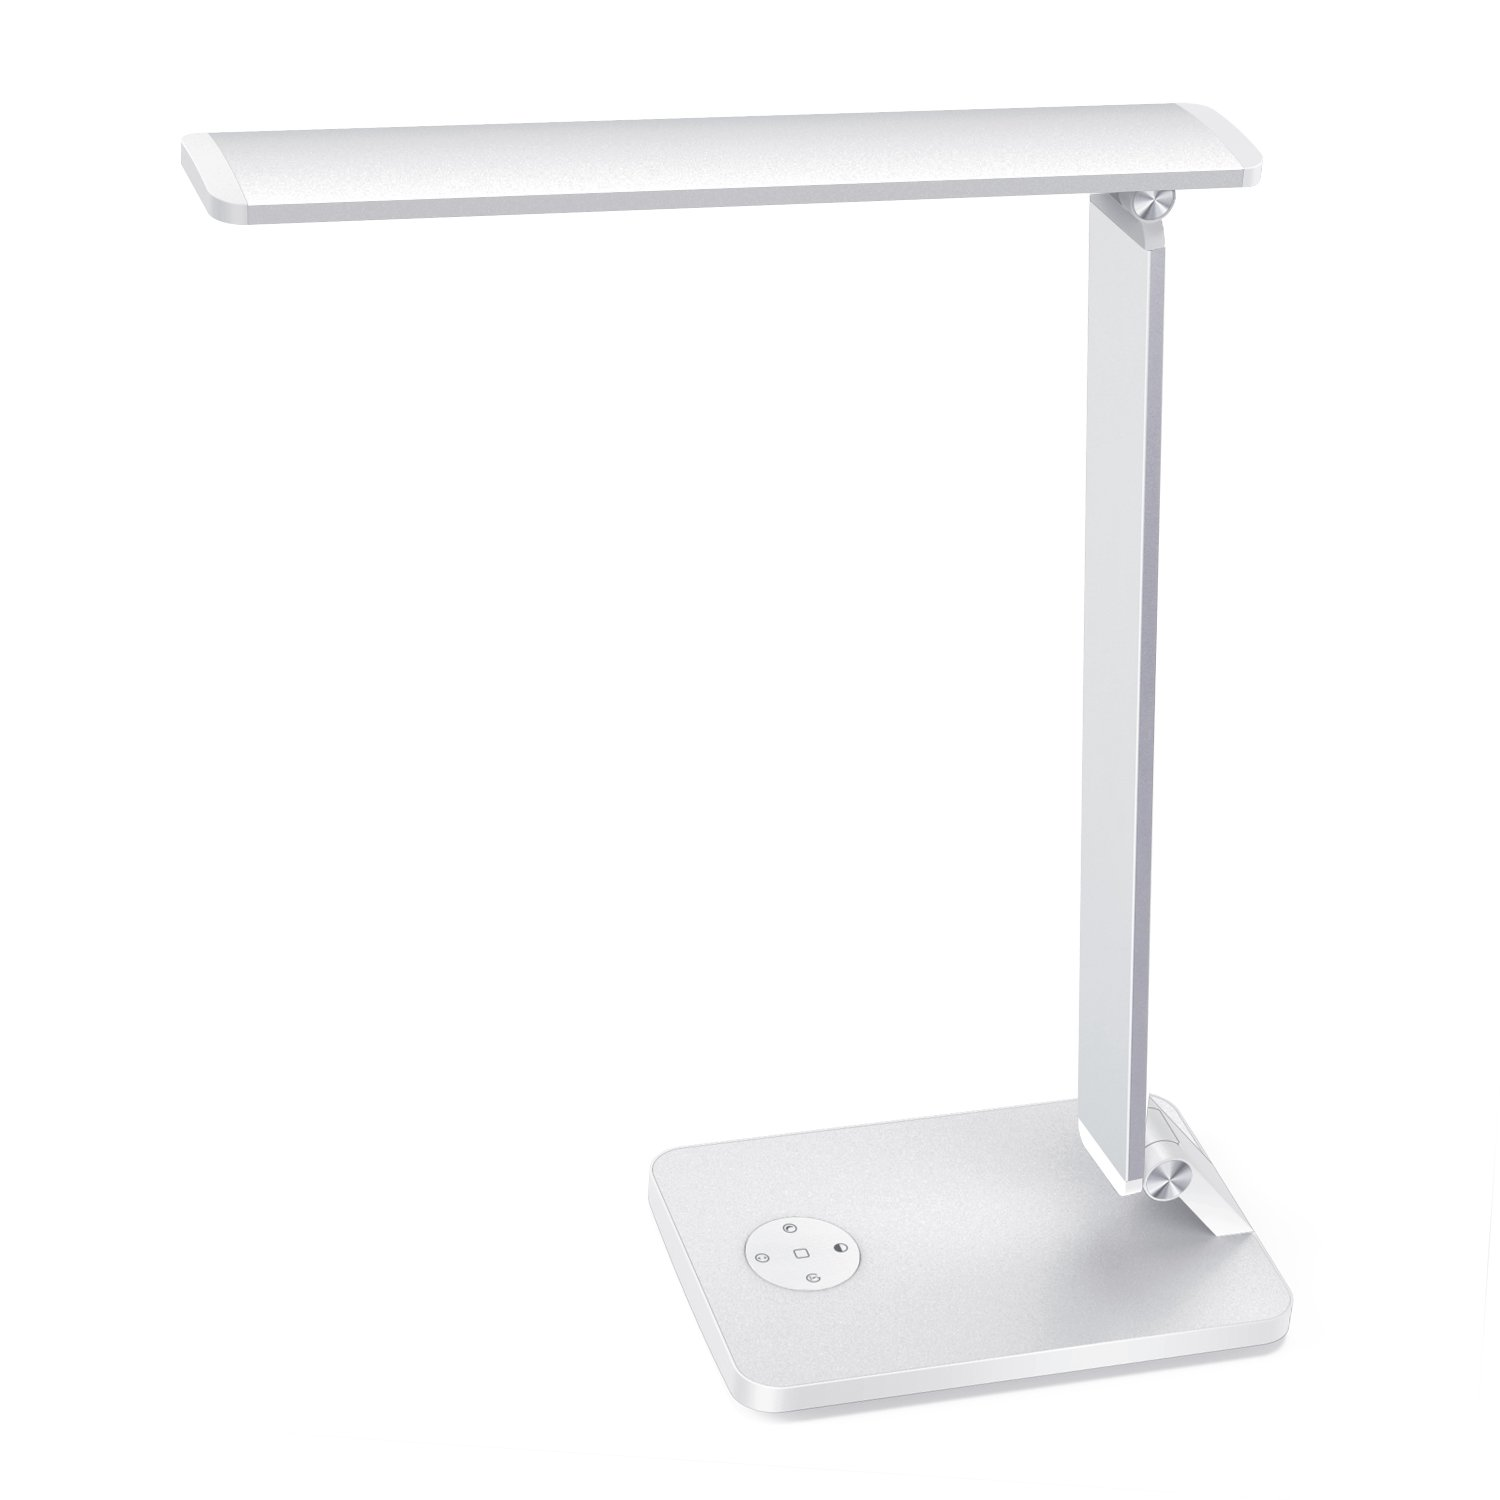 LED Desk Lamp, MoKo Smart Touch Stylish Metal Table Lamp, Rotatable Home Office Lamp with Stepless Brightness/Color Temperature, 5V 2.4A USB Charging Port, Memory Function, Sleep Mode - Silver